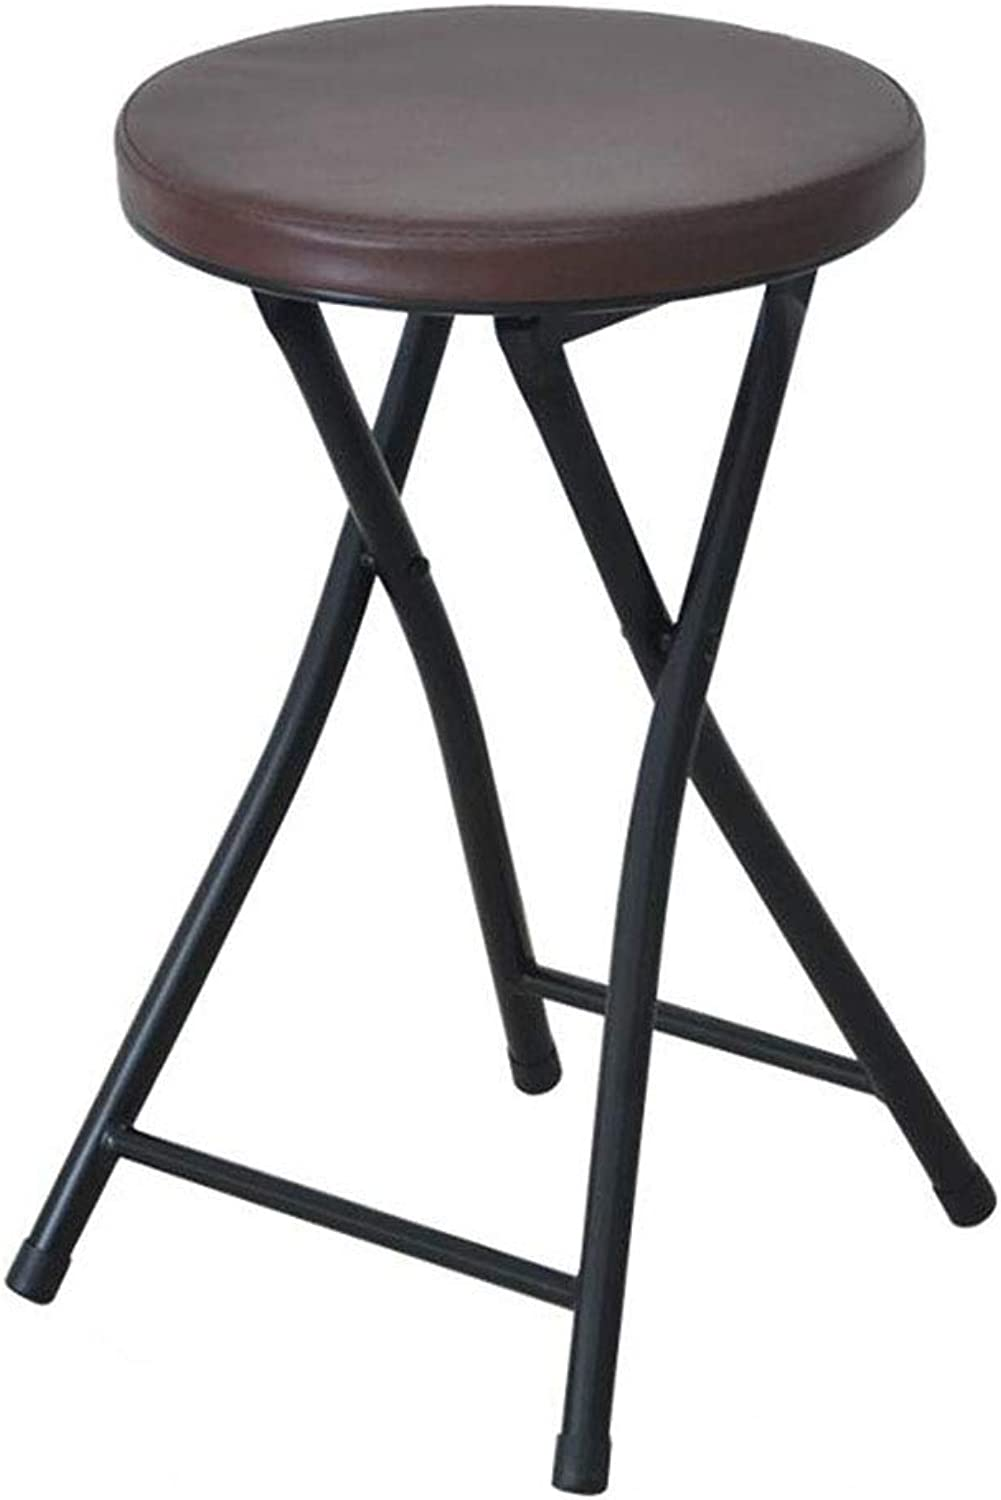 Folding Stool Home Office Simple Portable Chair High Stool Small Dining Table Bar Stool(30  30  48cm) (color   Brown)